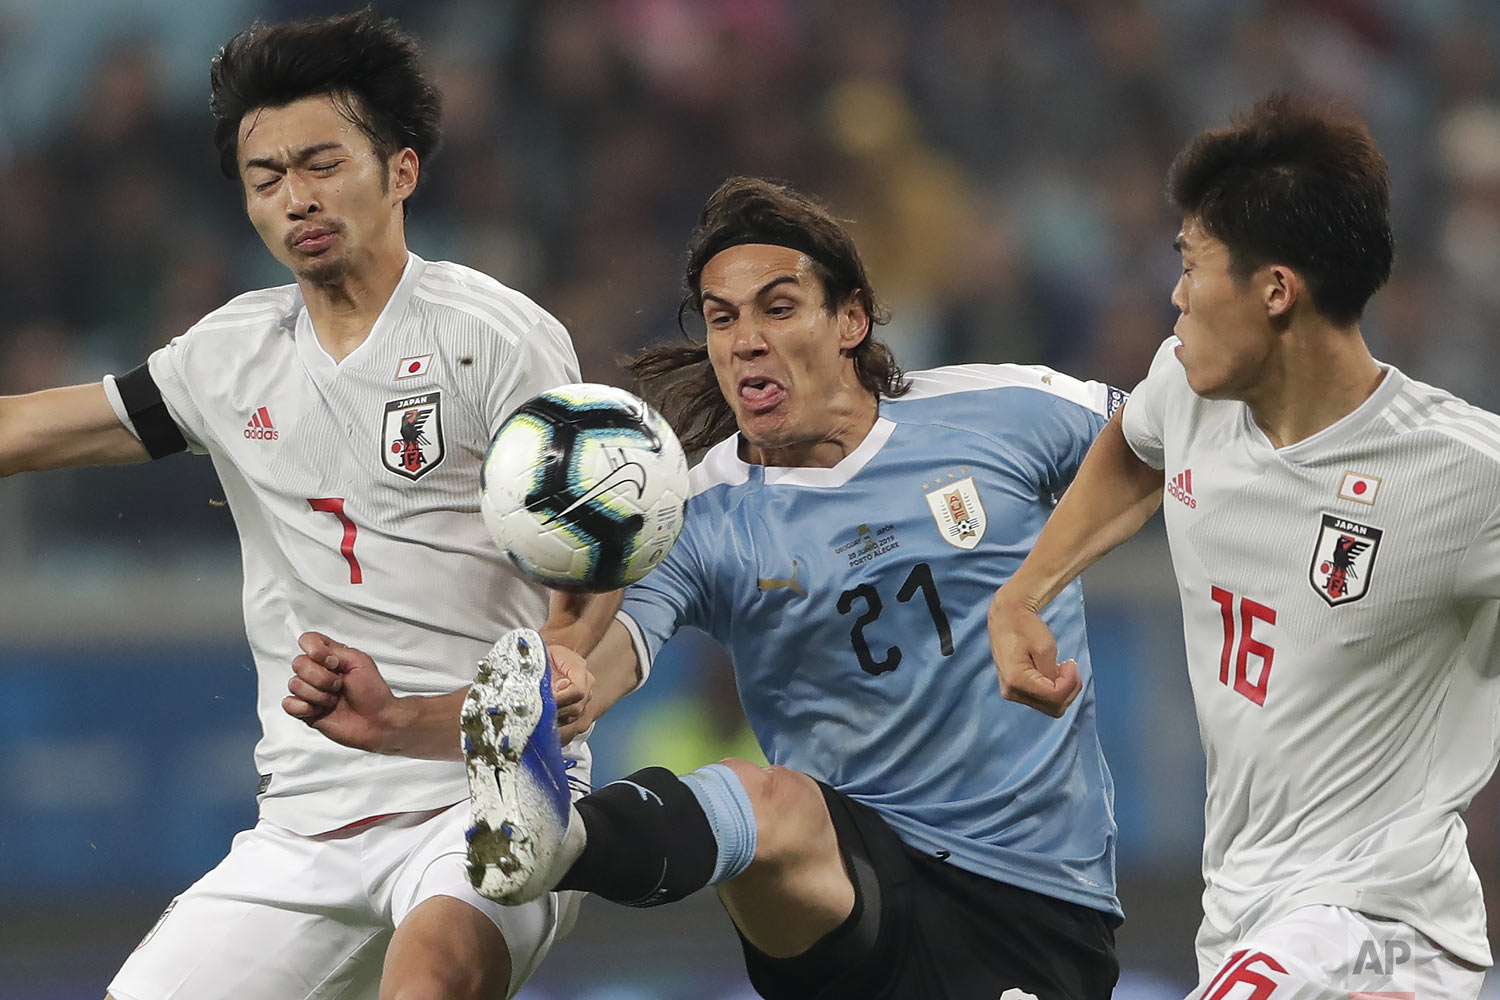 Uruguay's Edinson Cavani vies for the ball between Japan's Takehiro Tomiyasu, right, and  Gaku Shibasaki in Porto Alegre, Brazil, Thursday, June 20, 2019. (AP Photo/Silvia Izquierdo)